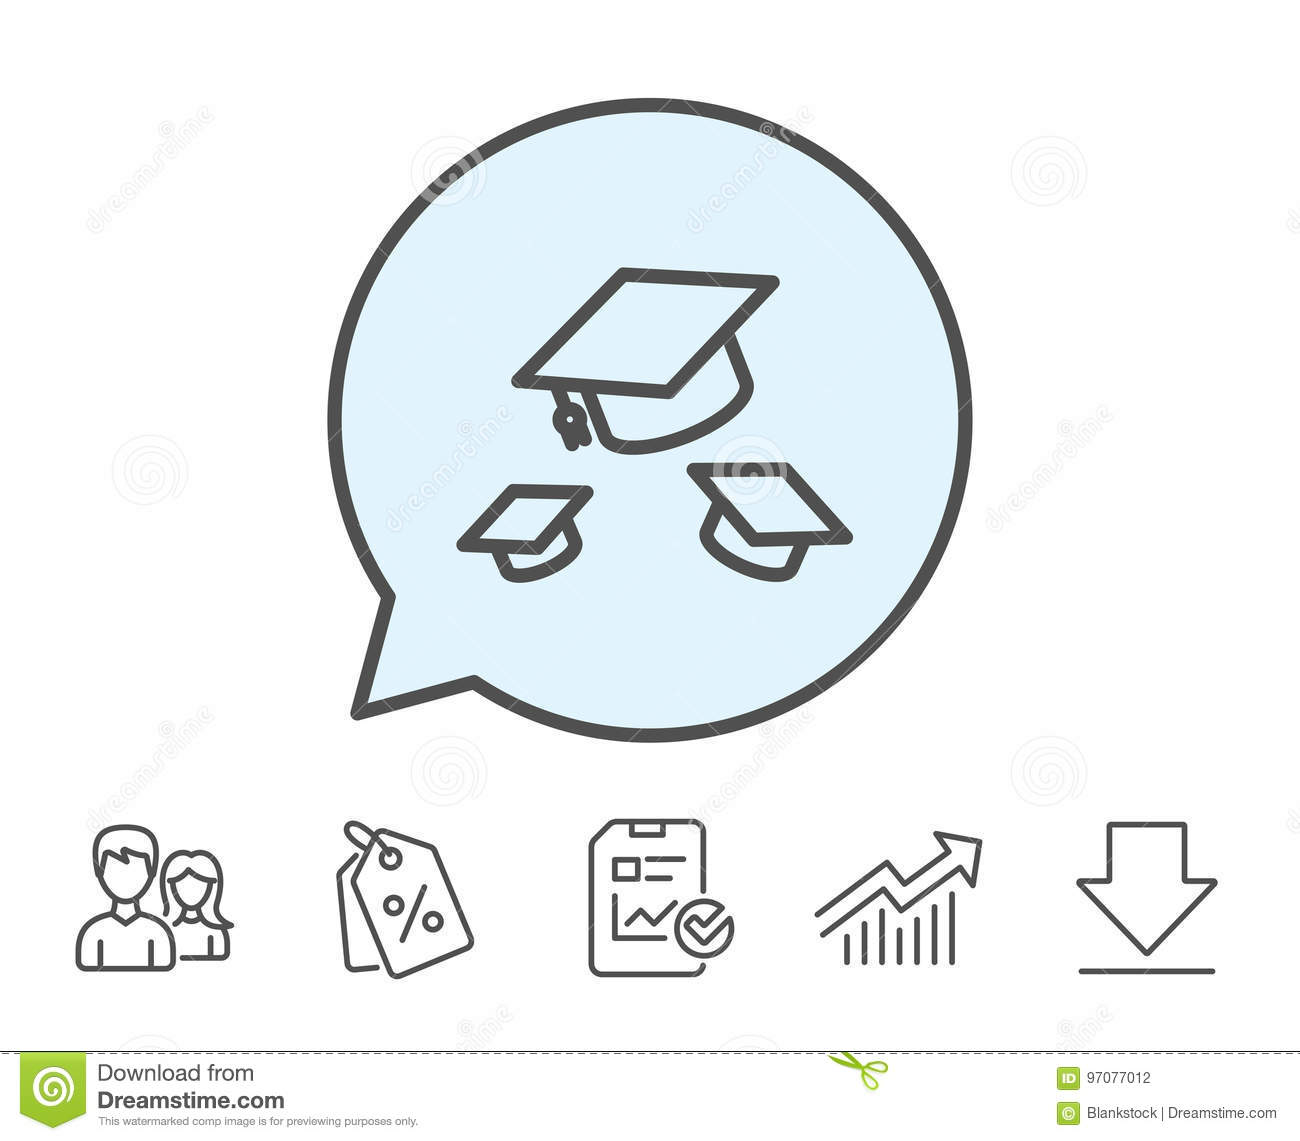 Graduation caps line icon. Education sign.